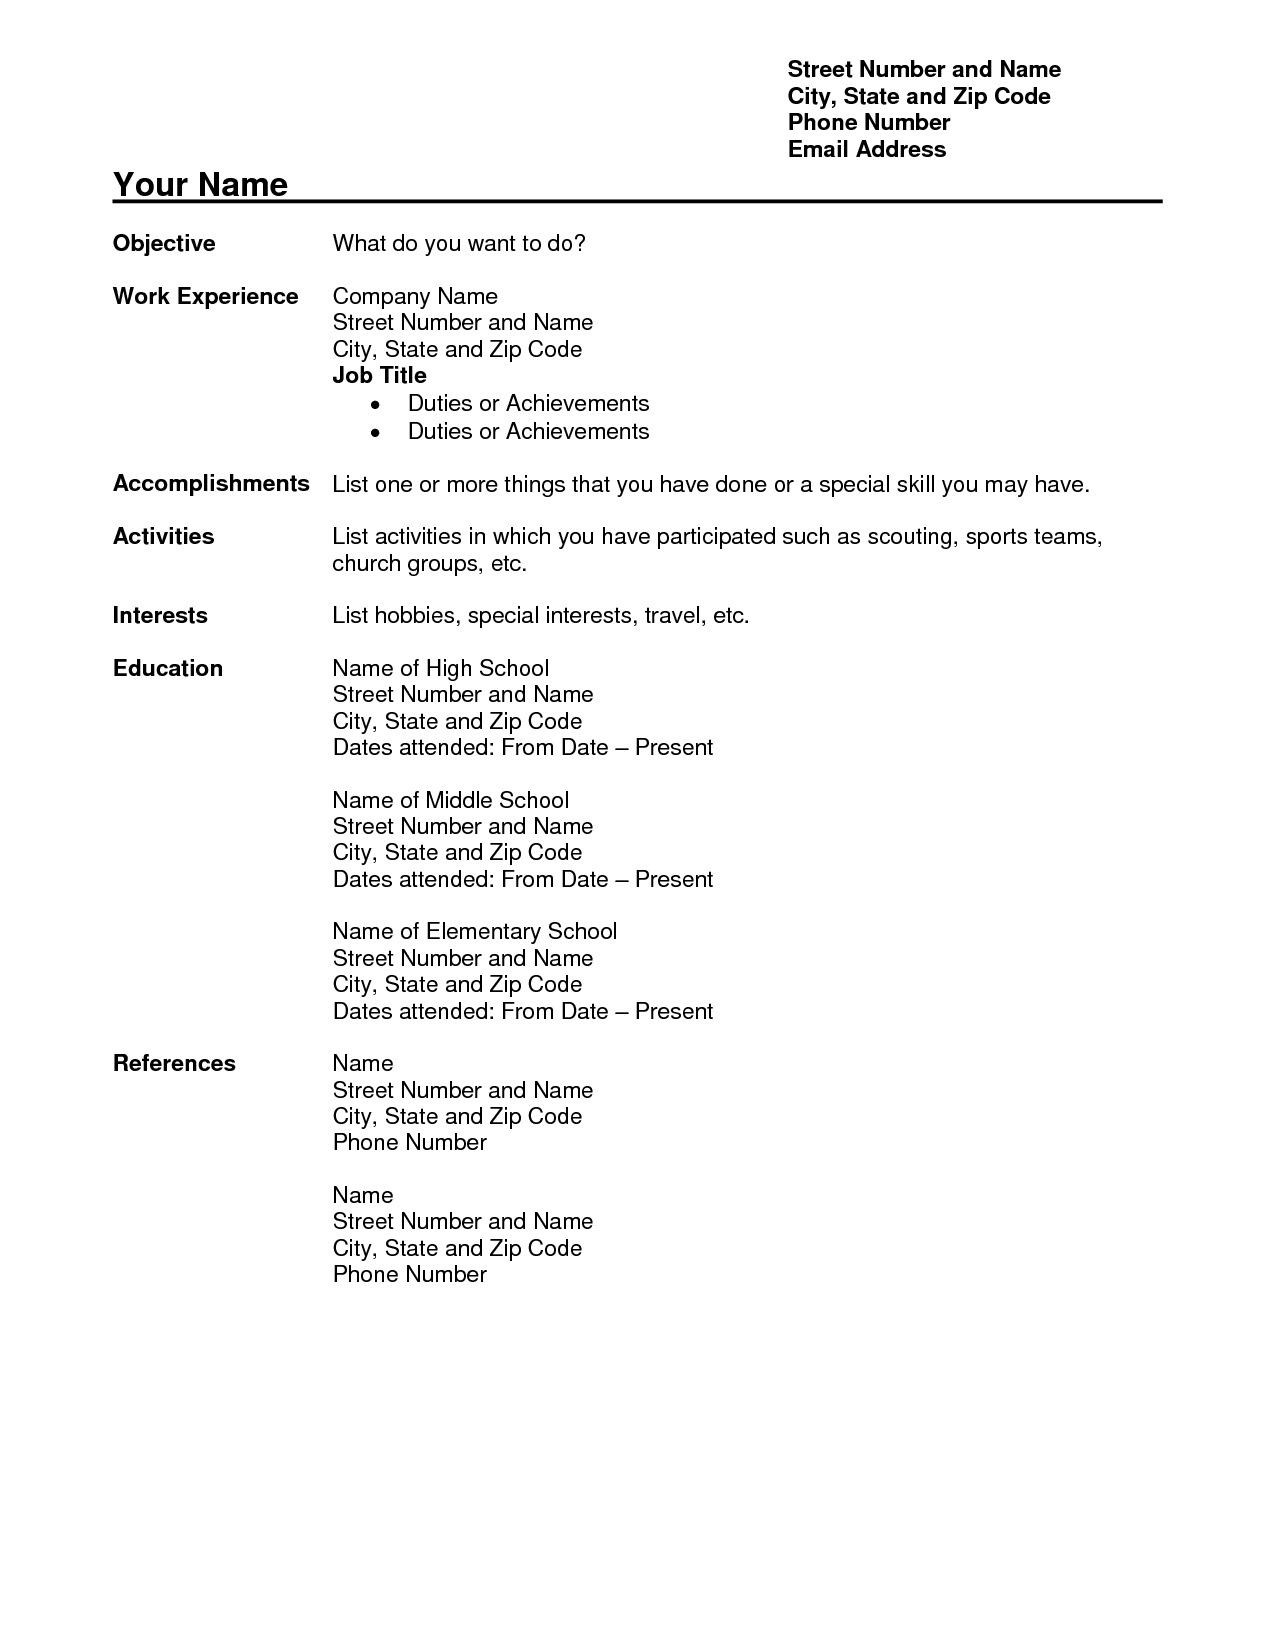 Resume Template Download Free Free Teacher Resume Templates Download Free Teacher Resume